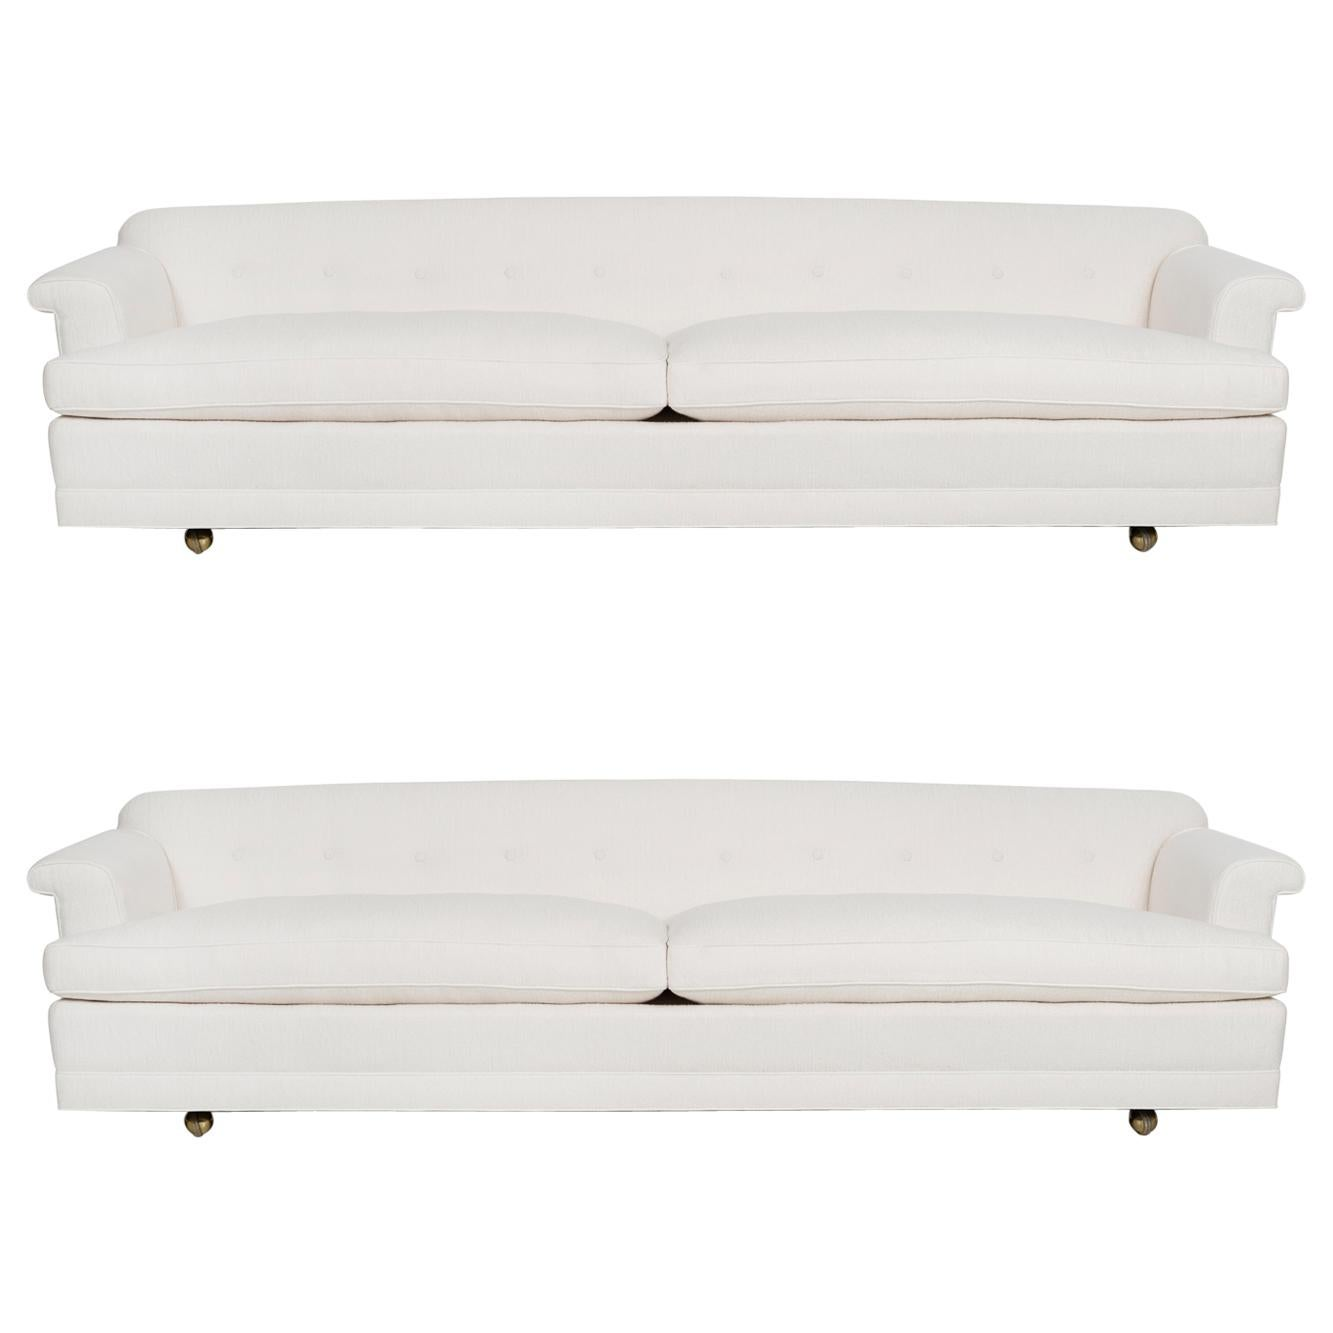 Pair of Edward Wormley for Dunbar Sofas